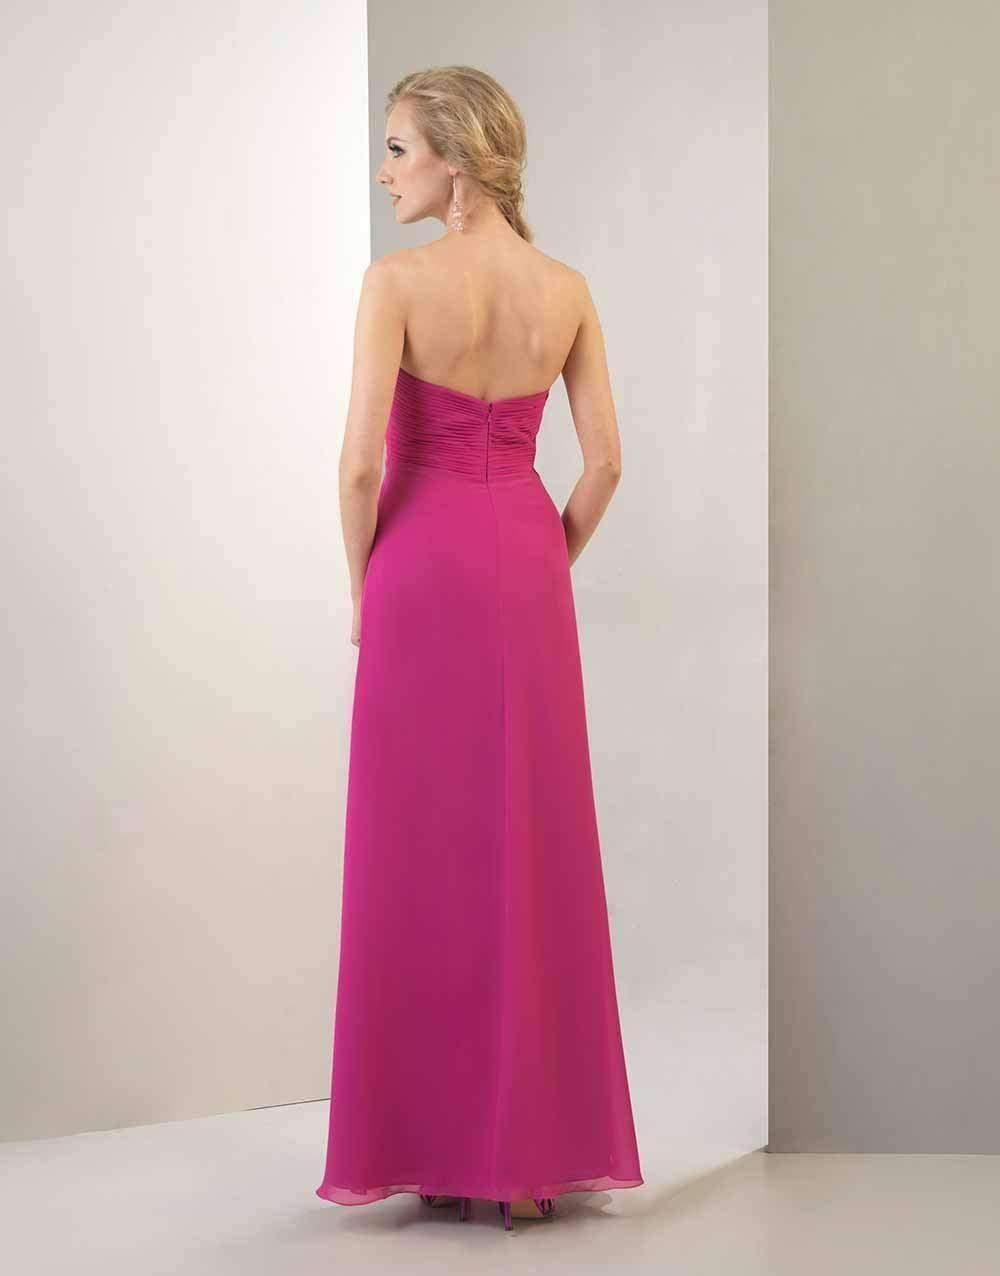 UK16 BRIGHT CERISE - INEZ - SALE - Adore Bridal and Occasion Wear